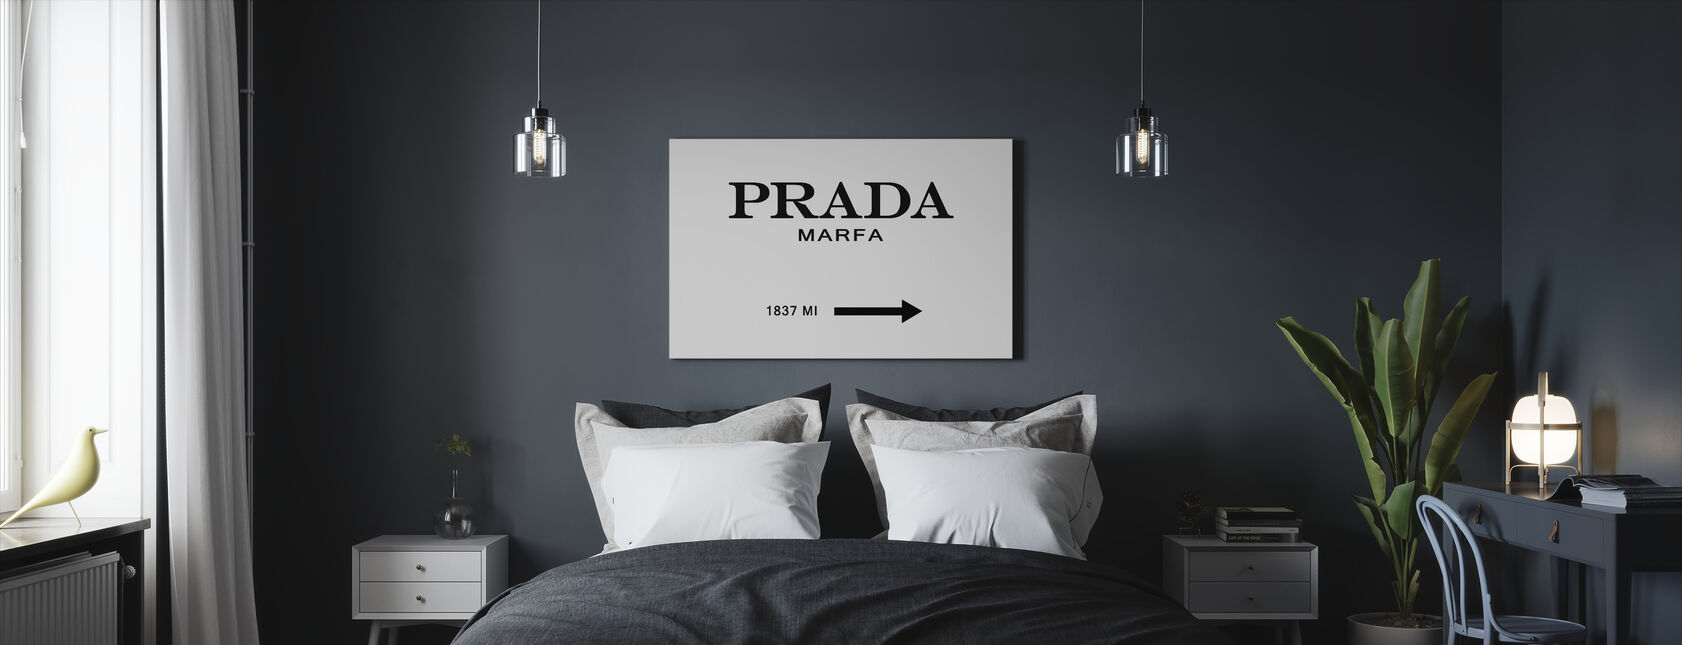 Prada Marfa - Canvas print - Bedroom